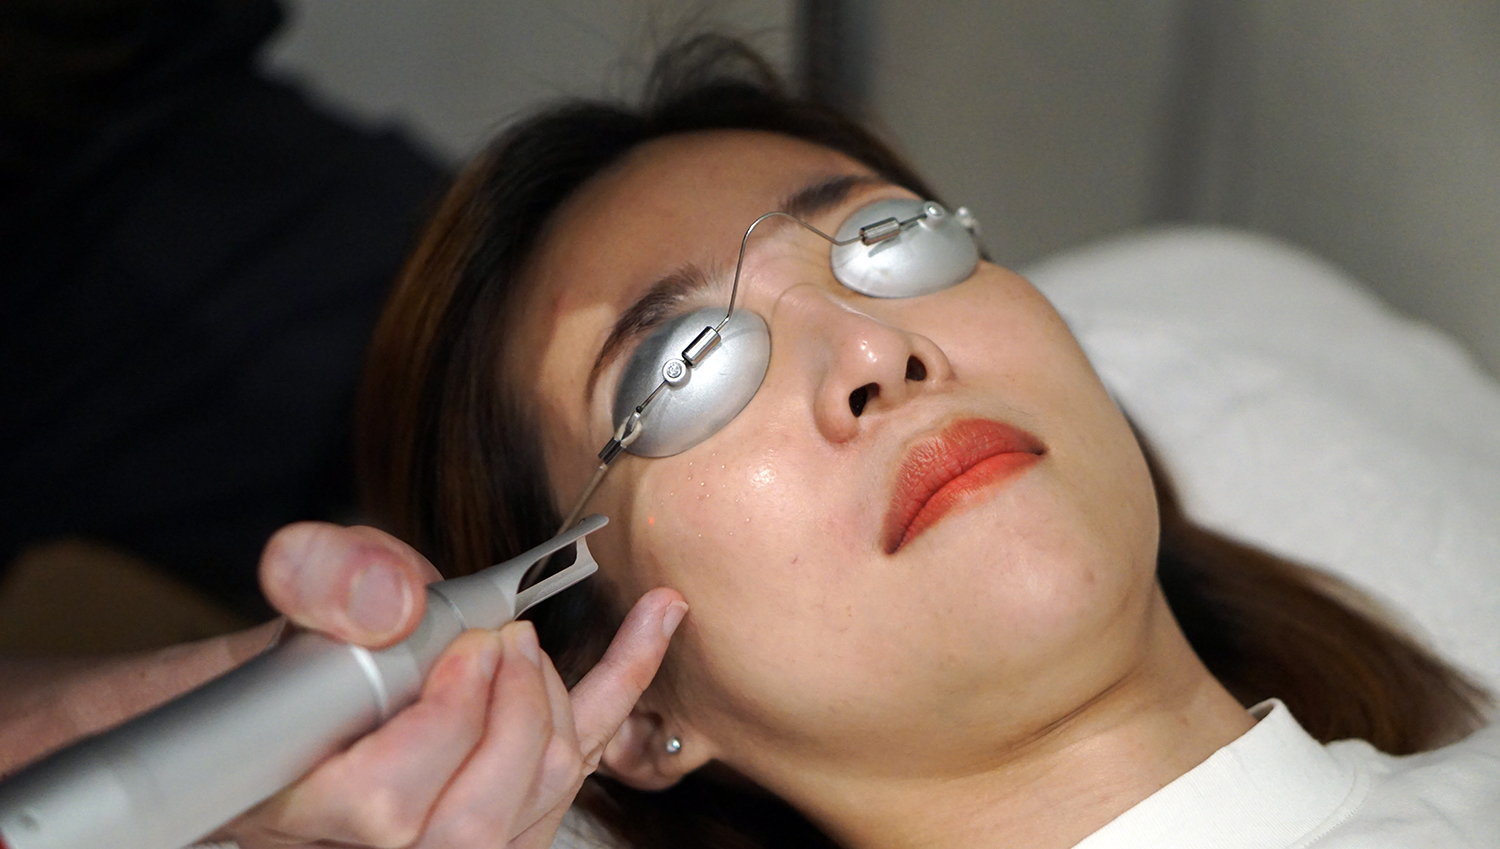 Clifford Clinic Freckles Pigmentation Removal Singapore Pico Laser